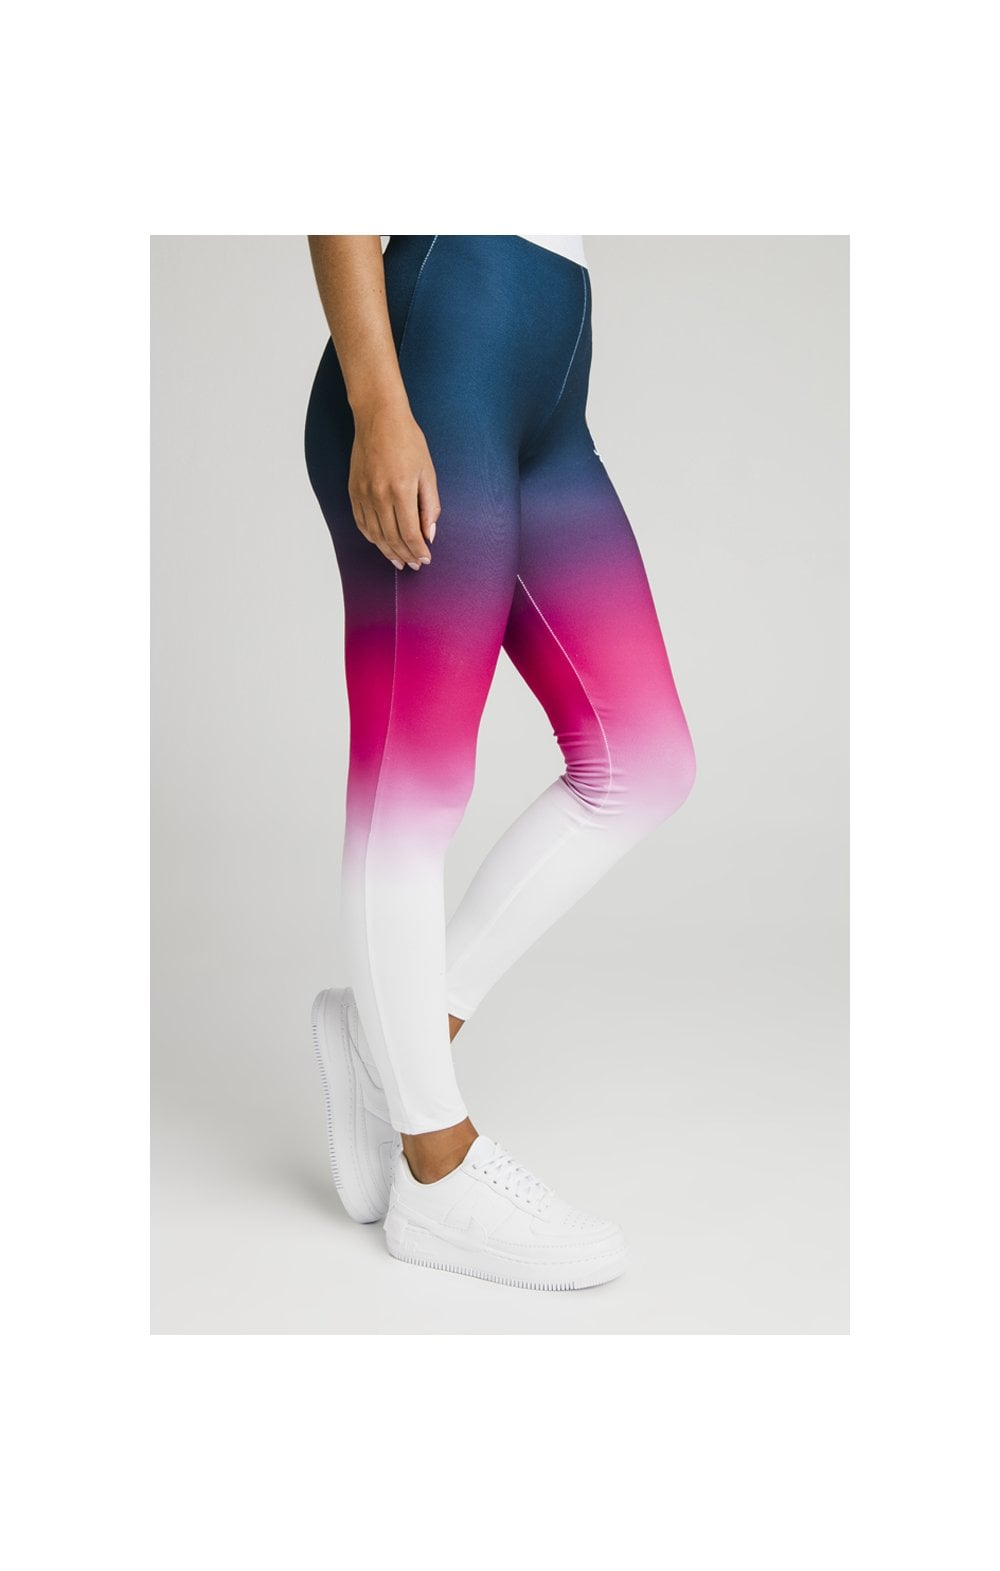 Charger l'image dans la galerie, SikSilk Fade Tape Leggings - Navy, Pink & White (1)